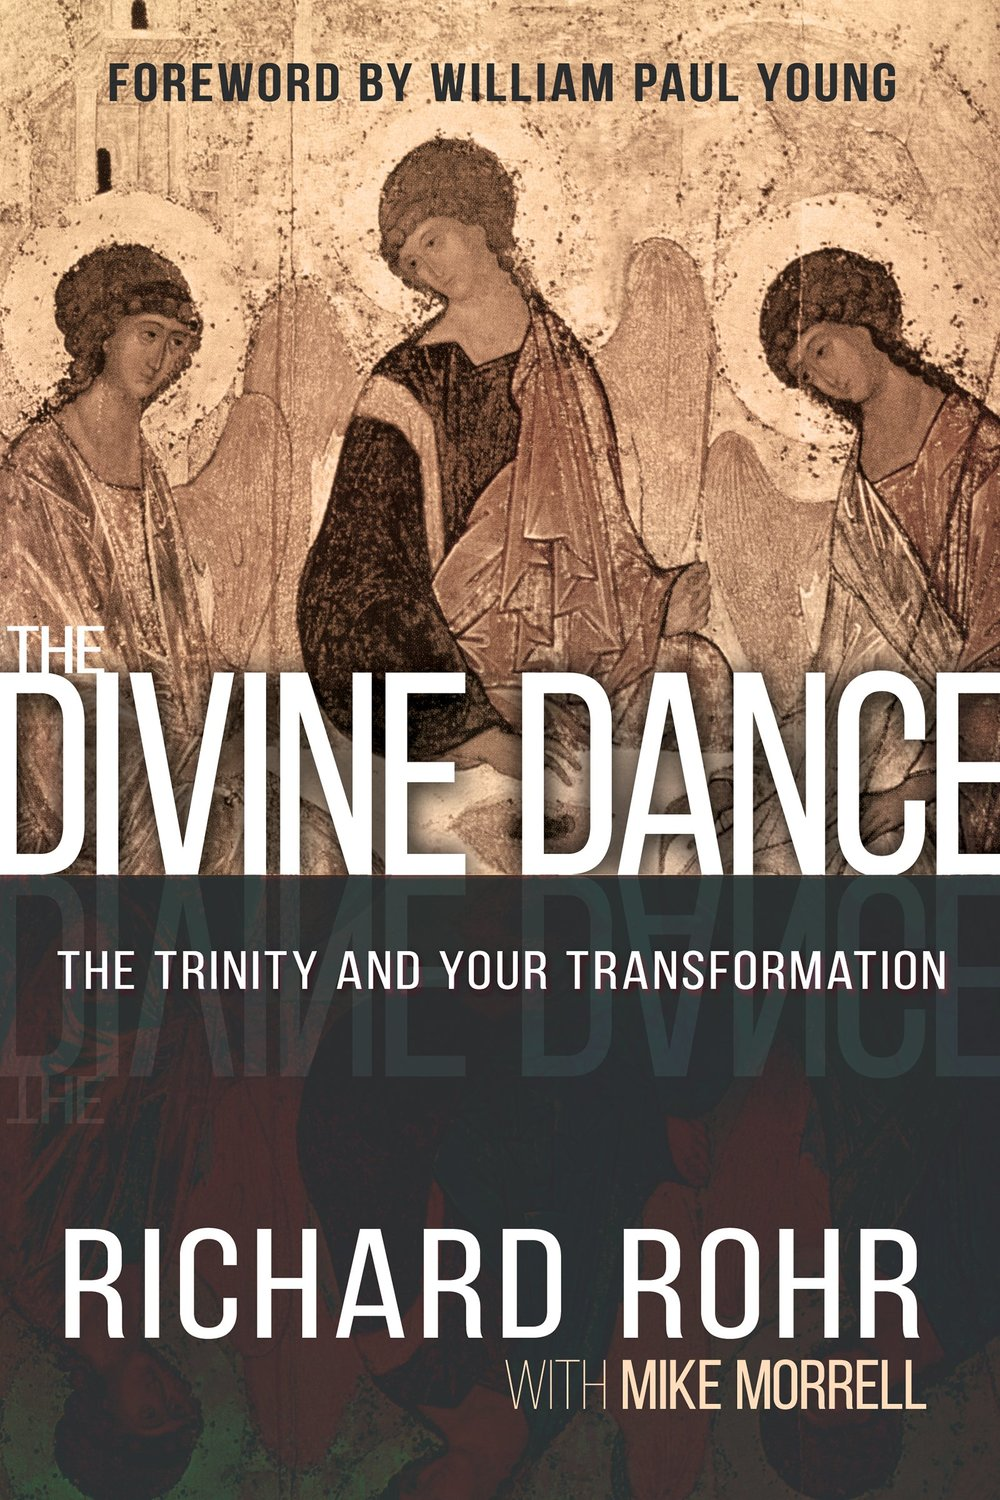 The Divine Dance, Richard Rohr with Mike Morrell